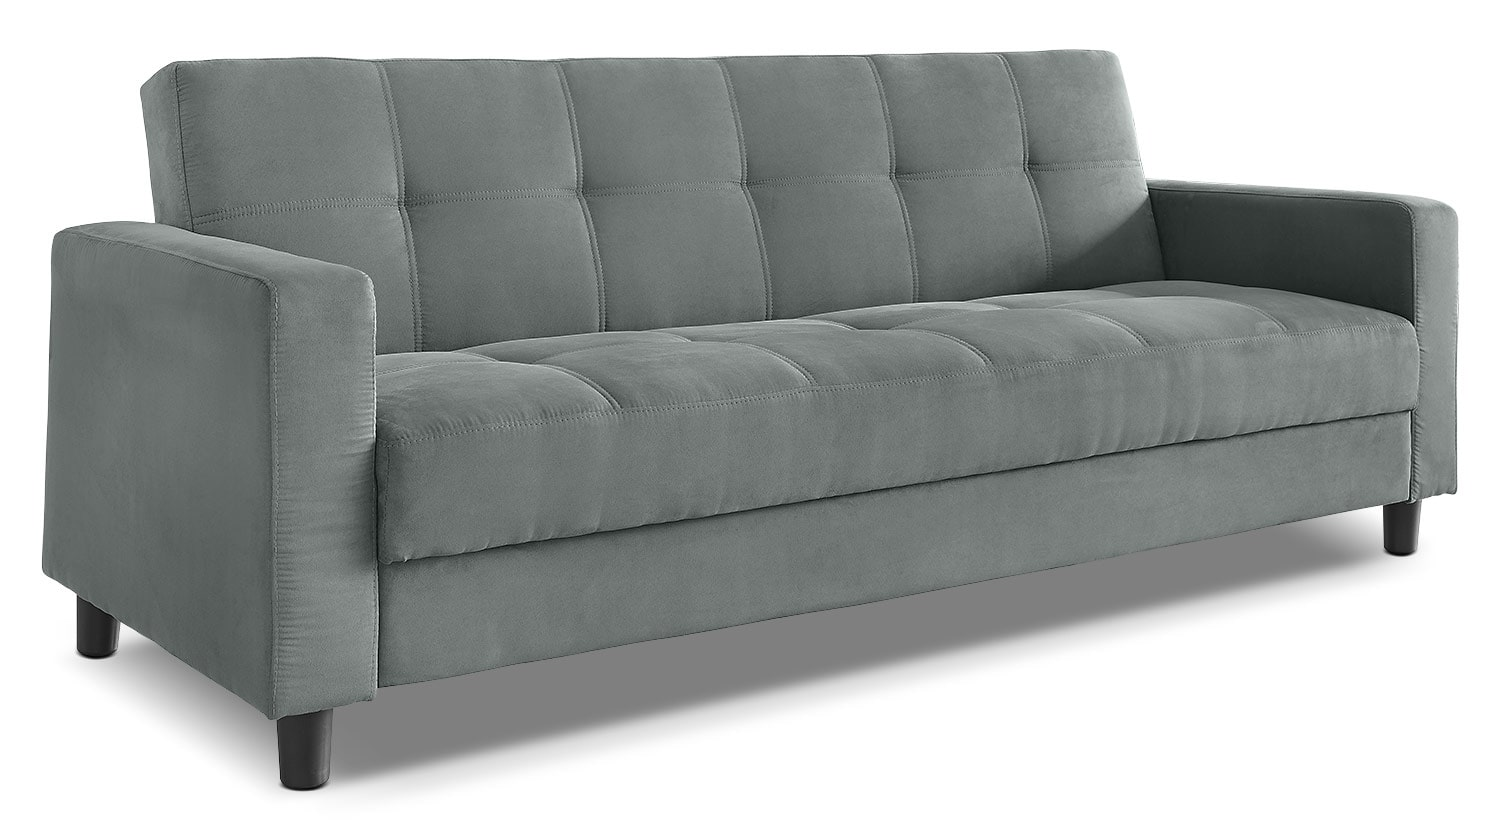 Raeburn Convertible Sofa